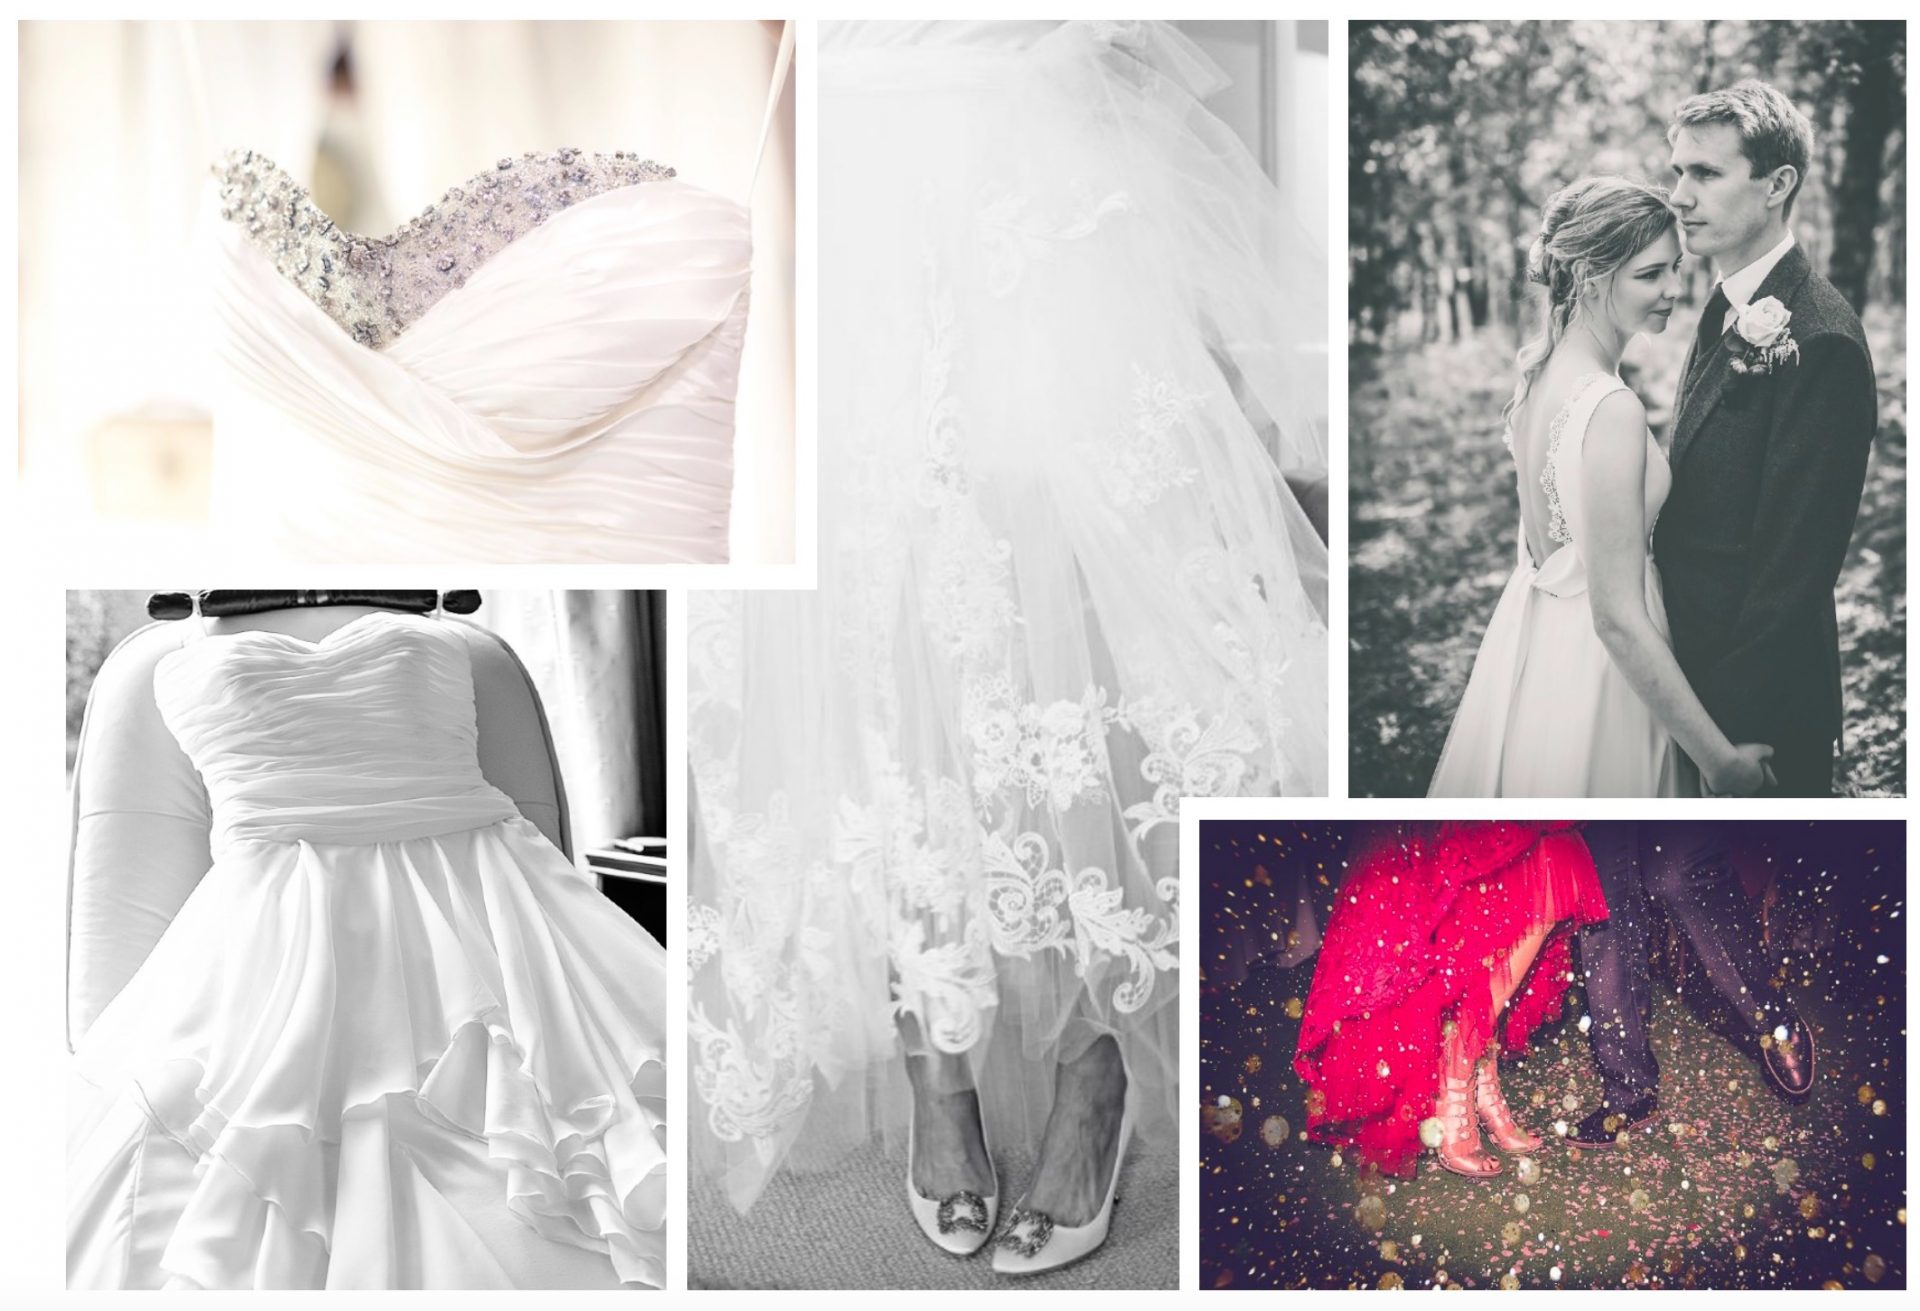 Bespoke Bridal Dresses by Delphine Couture